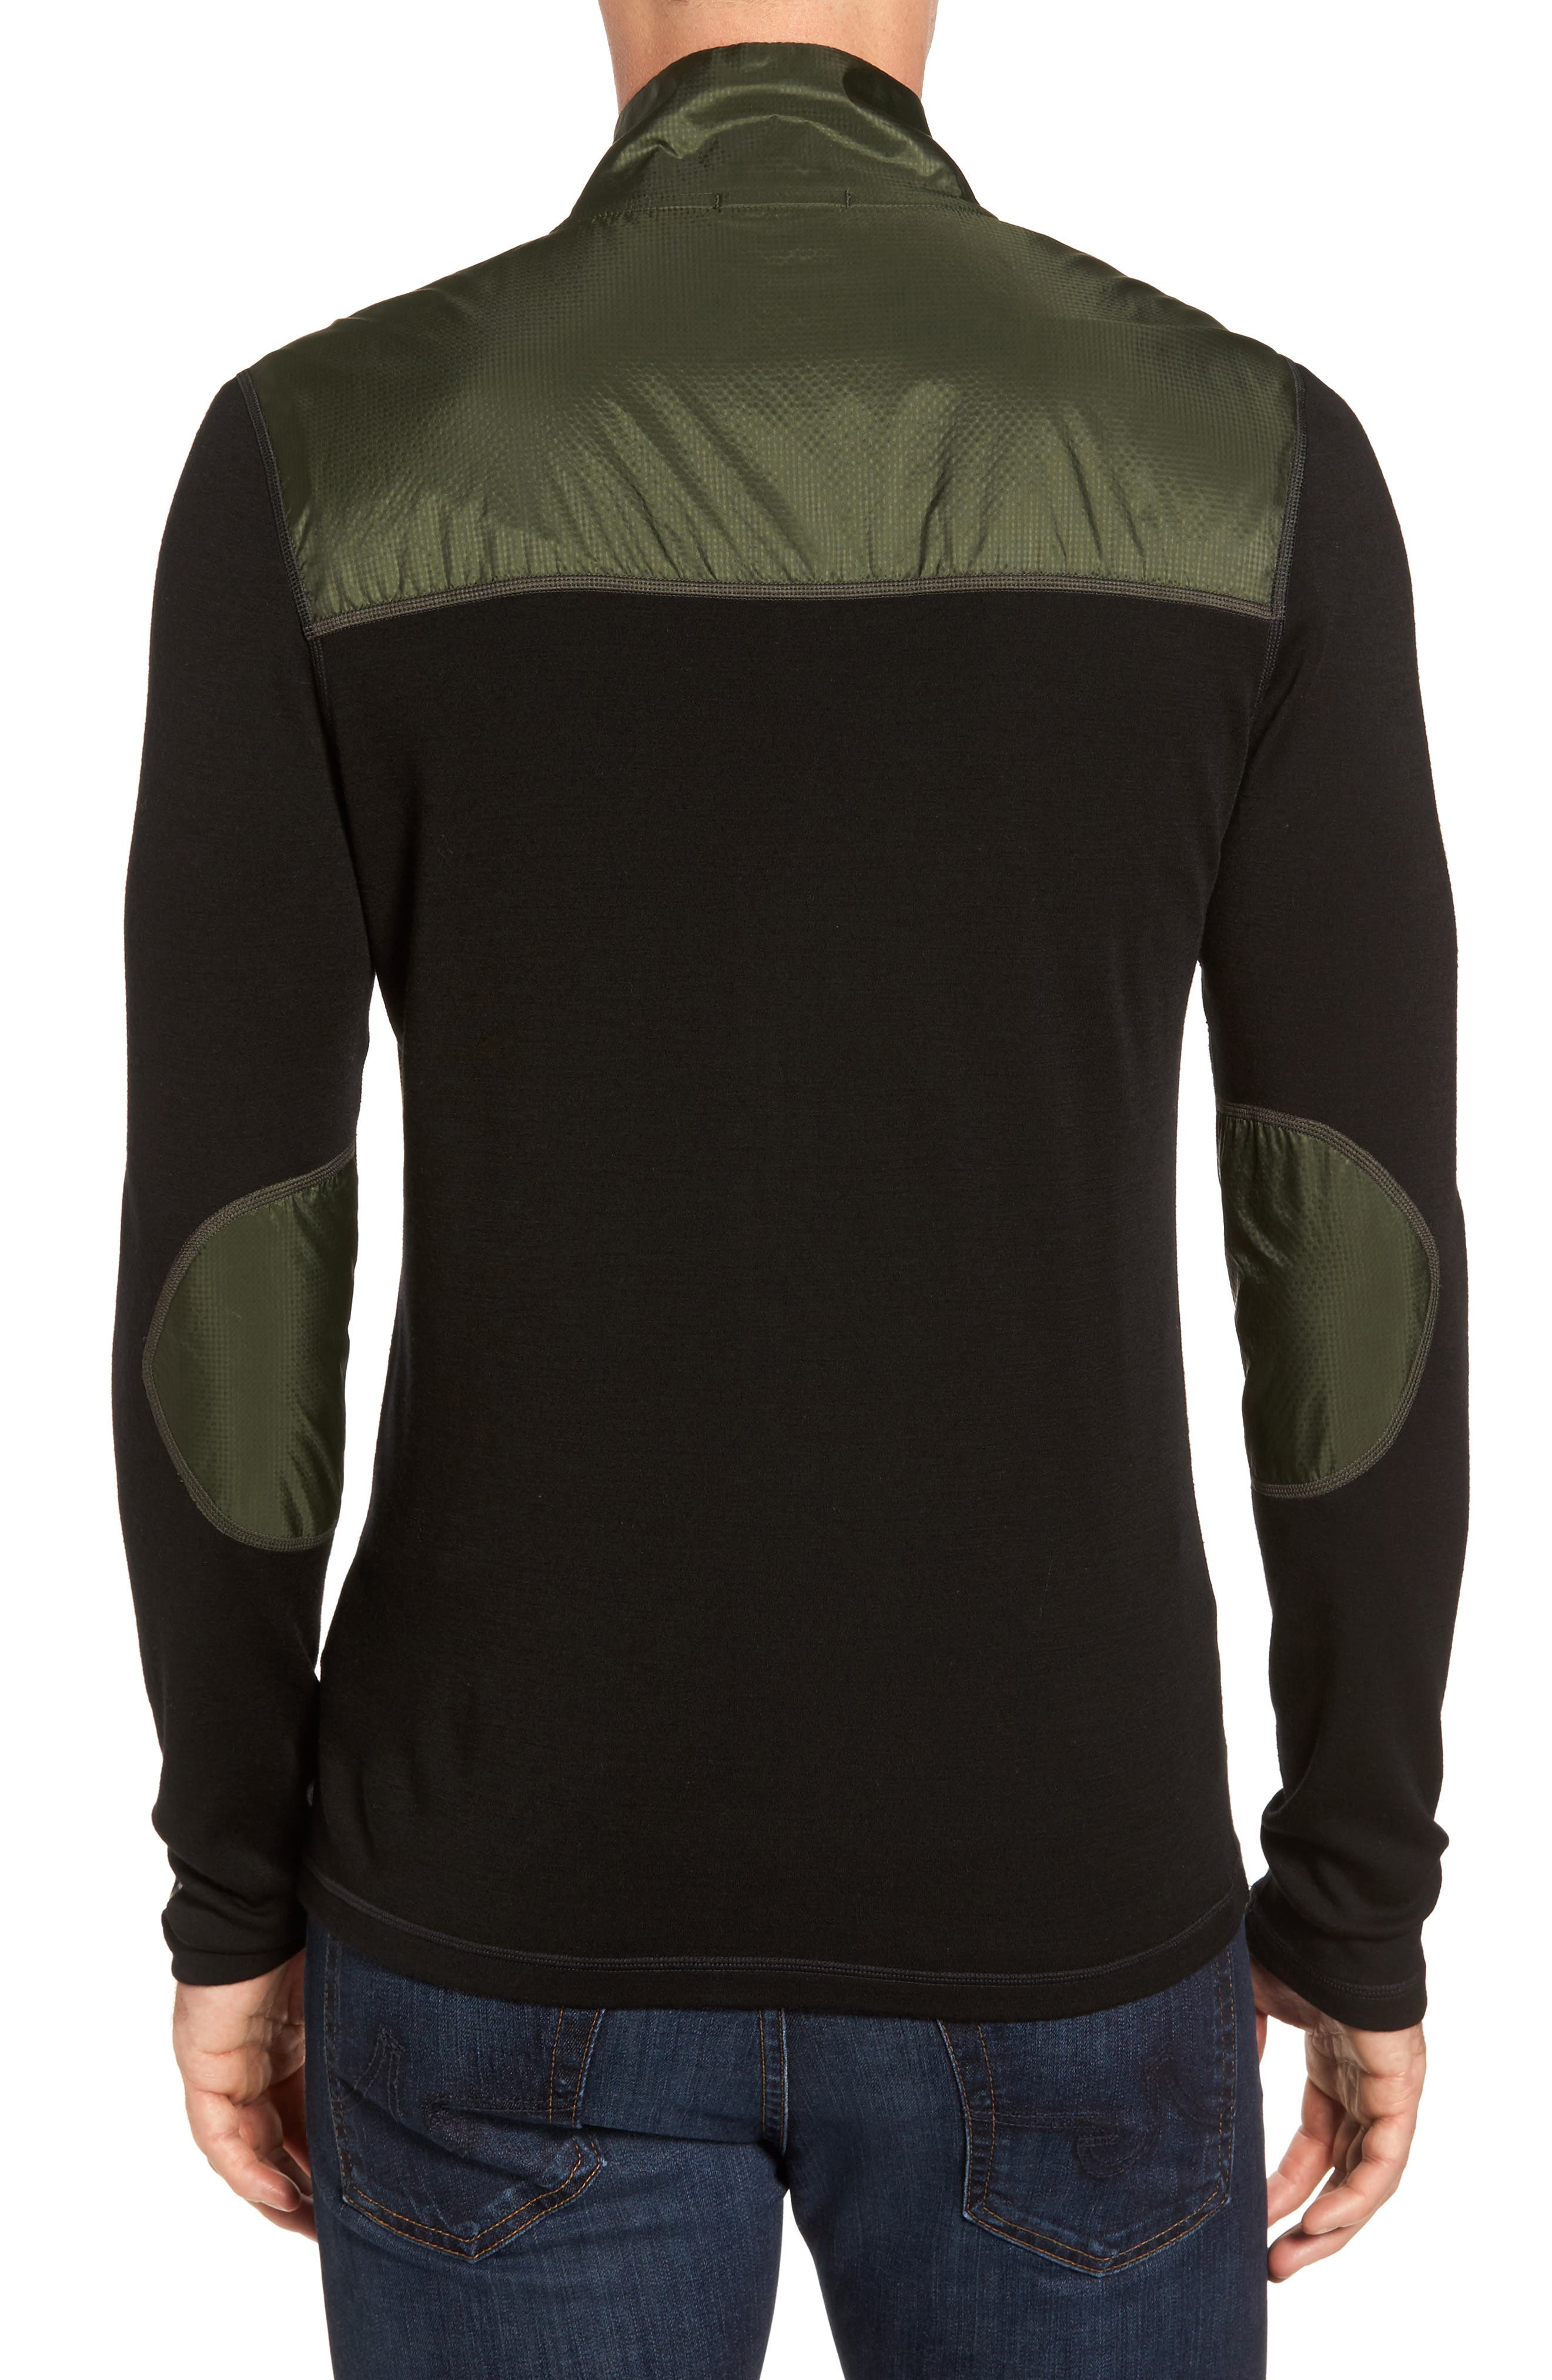 250 Sport Merino Wool Zip Jacket,                             Alternate thumbnail 2, color,                             Olive